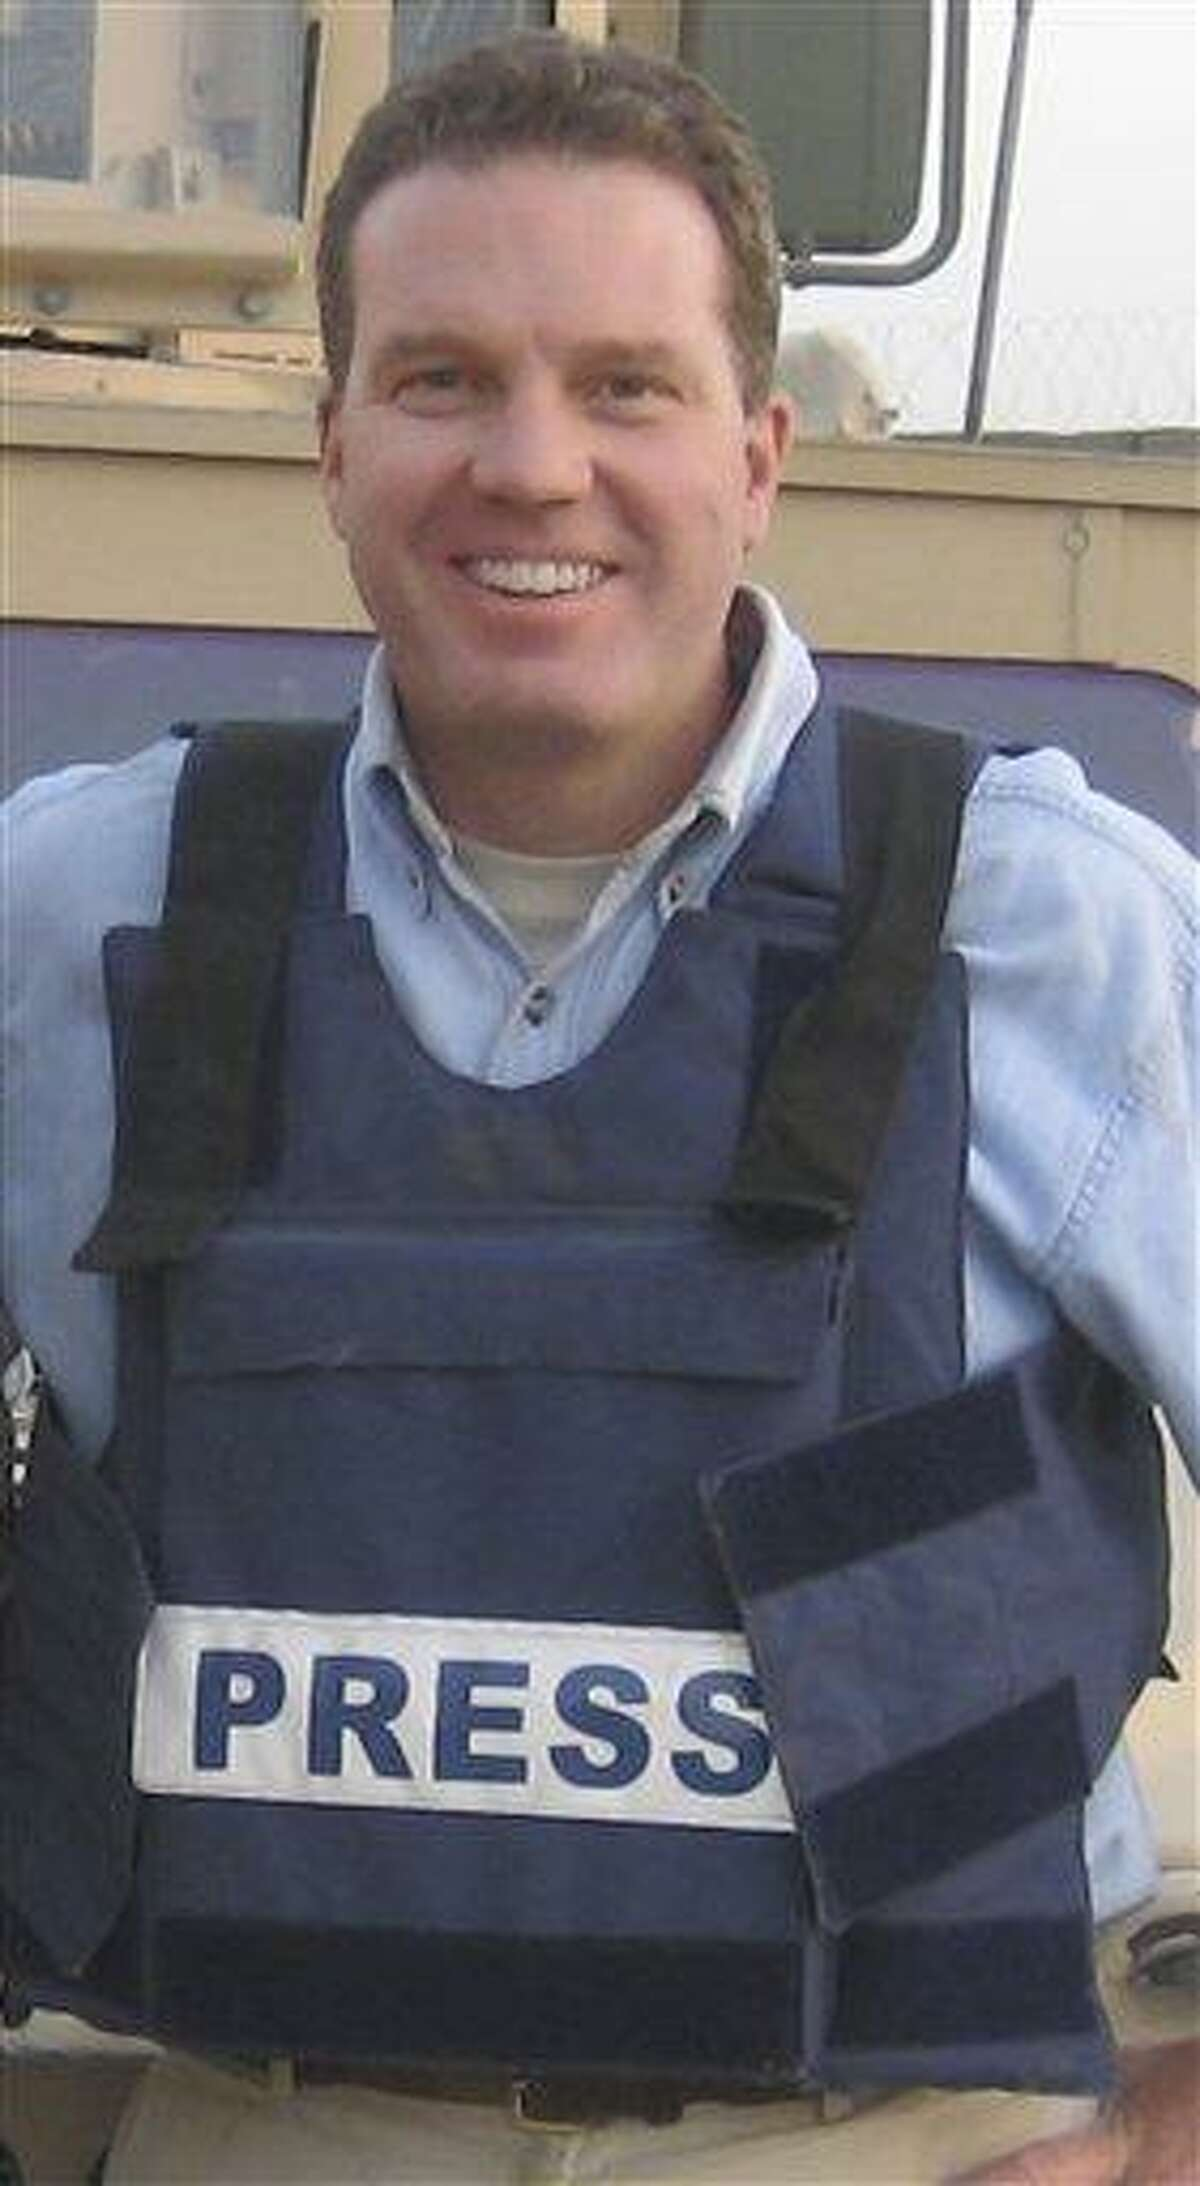 This picture shows Gregory Joseph Burke as a Fox News journalist in the U.S. base of Camp Spann in Afghanistan. Burke, 52, has agreed to become a senior communications adviser in the Vatican's secretariat of state, part of a new interface with world media. Burke would probably have to sign off on events like the Vatican bank's press conference. Associated Press